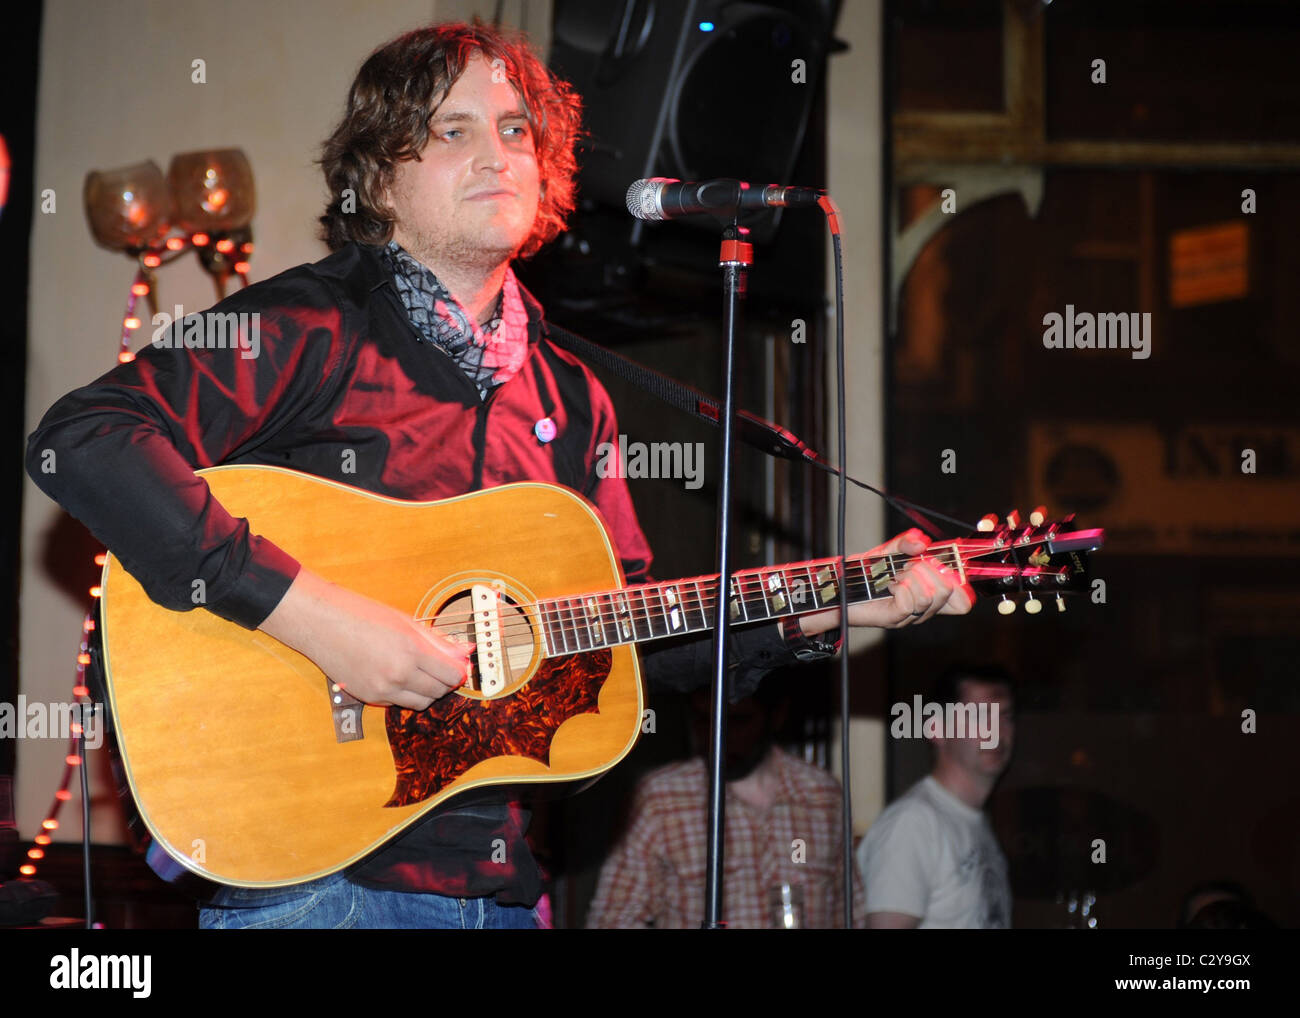 James Walsh The Boogaloo in Highgate London, England - 19.08.08 - Stock Image